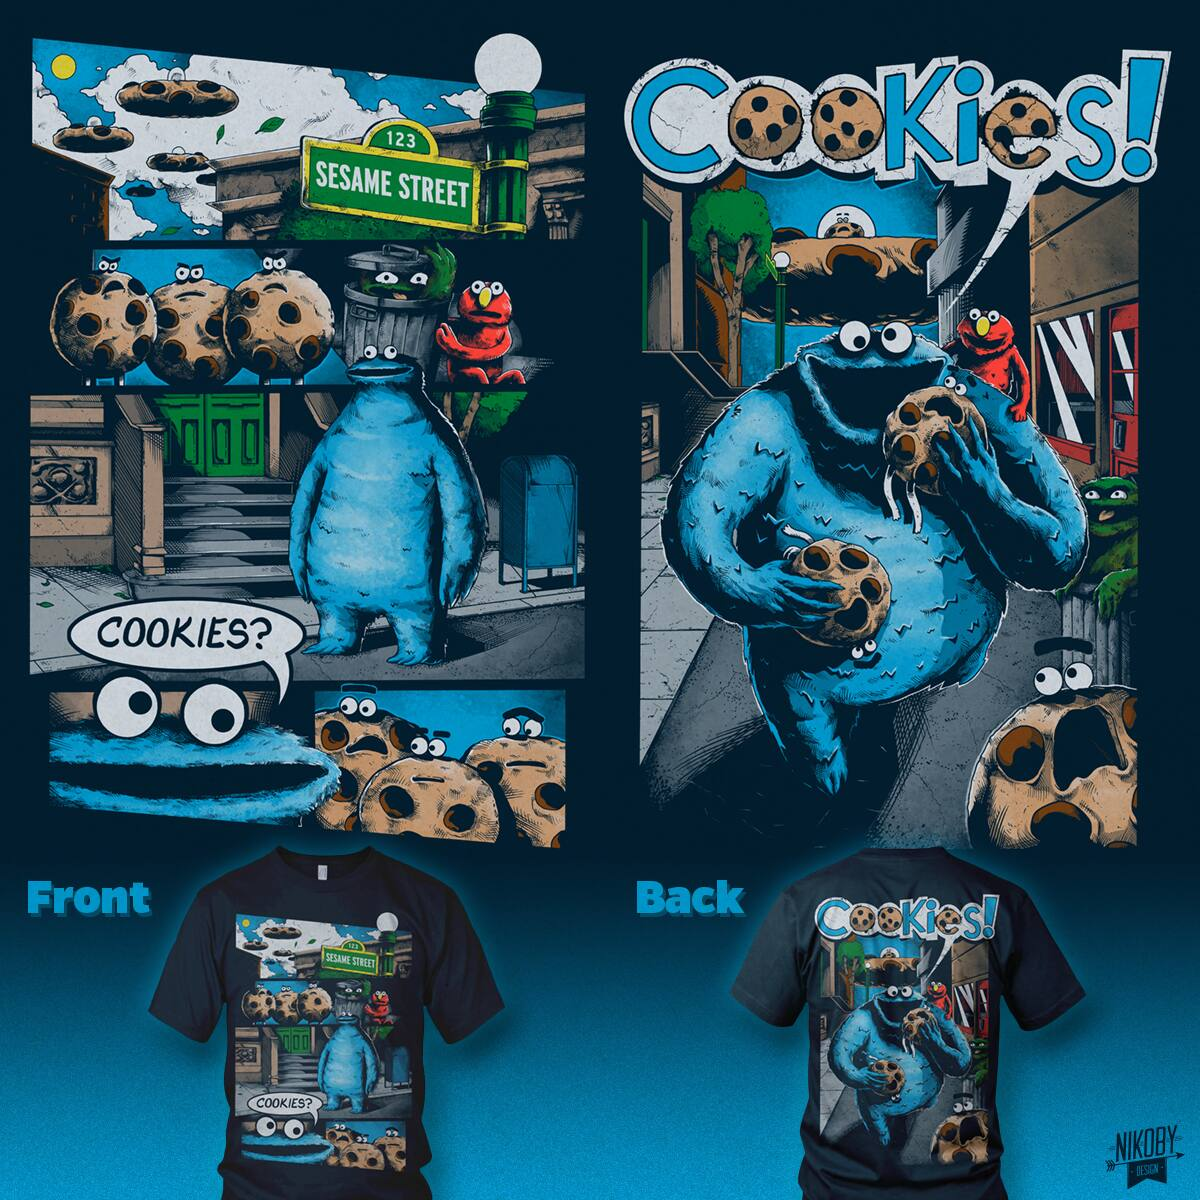 The Day the Cookies Crumbled by nikoby on Threadless